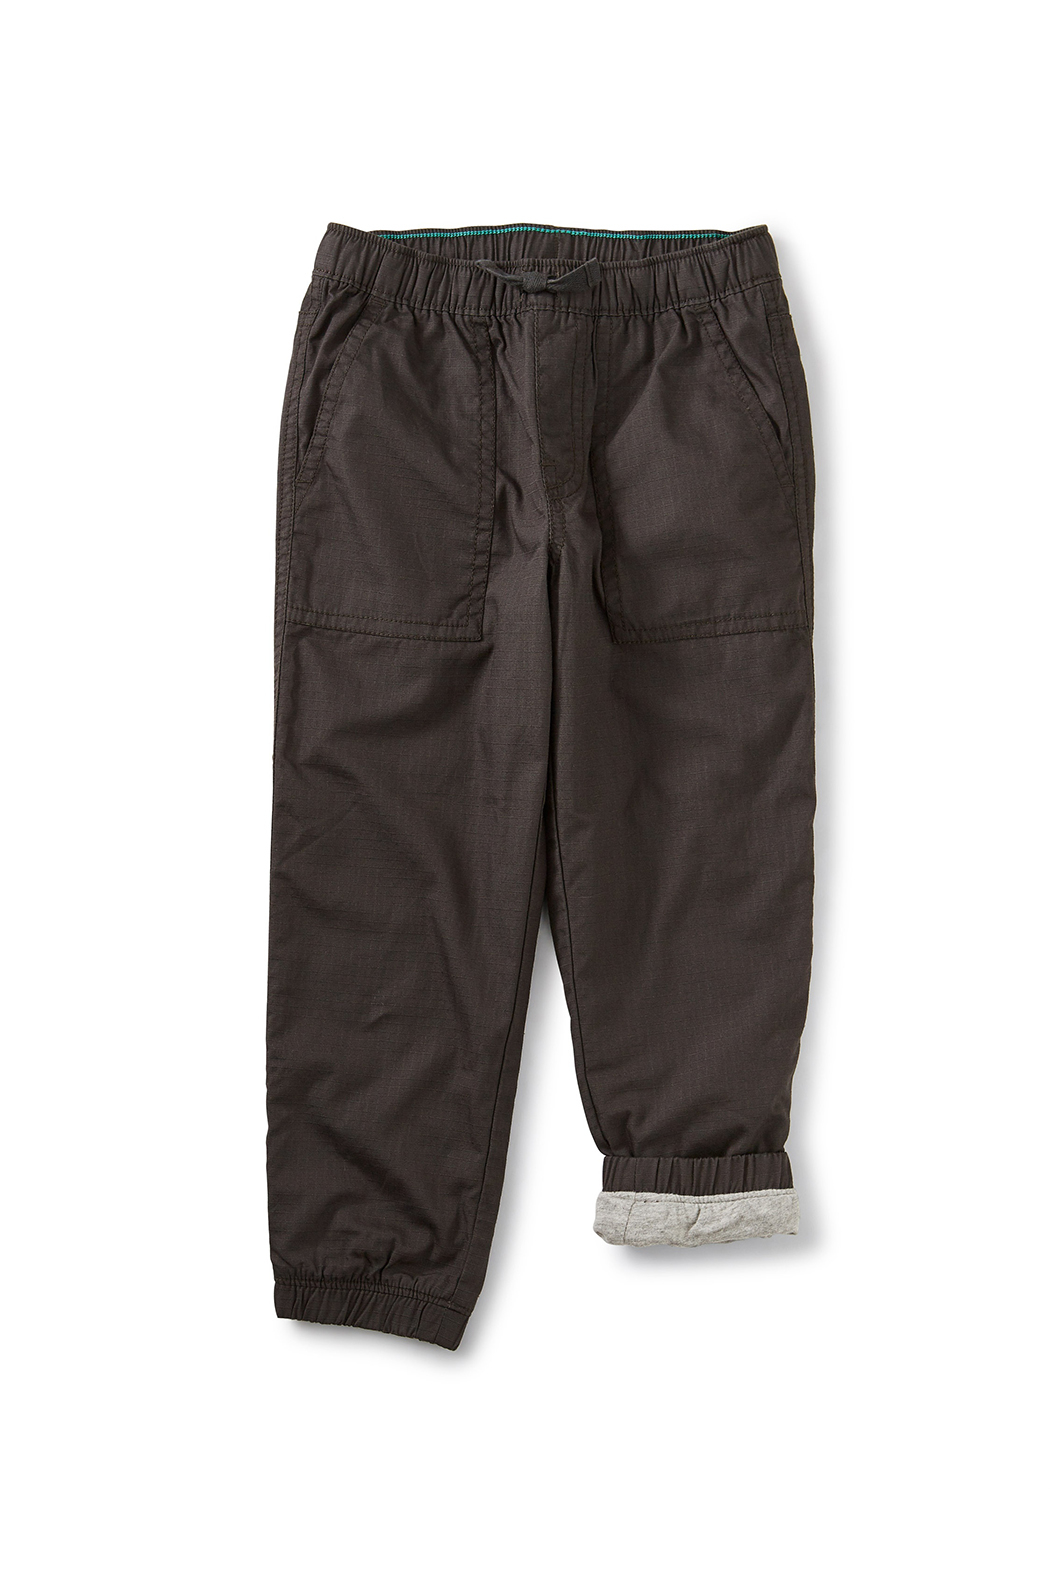 Tea Collection Lined Ripstop Endurance Joggers - Main Image